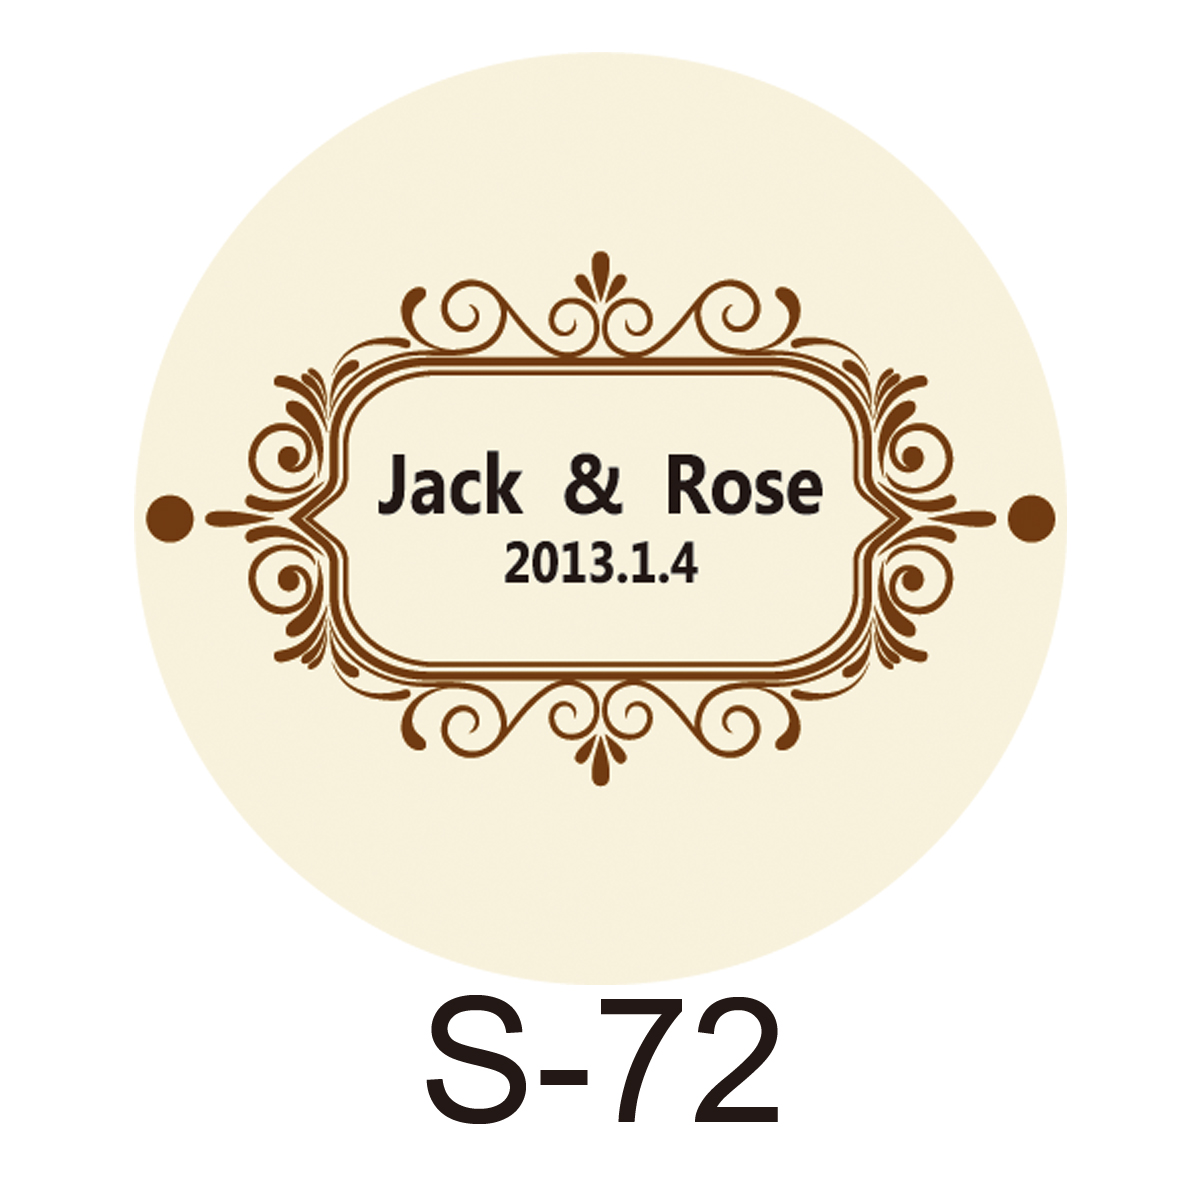 150pcs/lot Personalized Candy Sticker Favor Sticker For Wedding Bride Shower Wedding Party Decoration Small Circle S72 Back To Search Resultshome & Garden